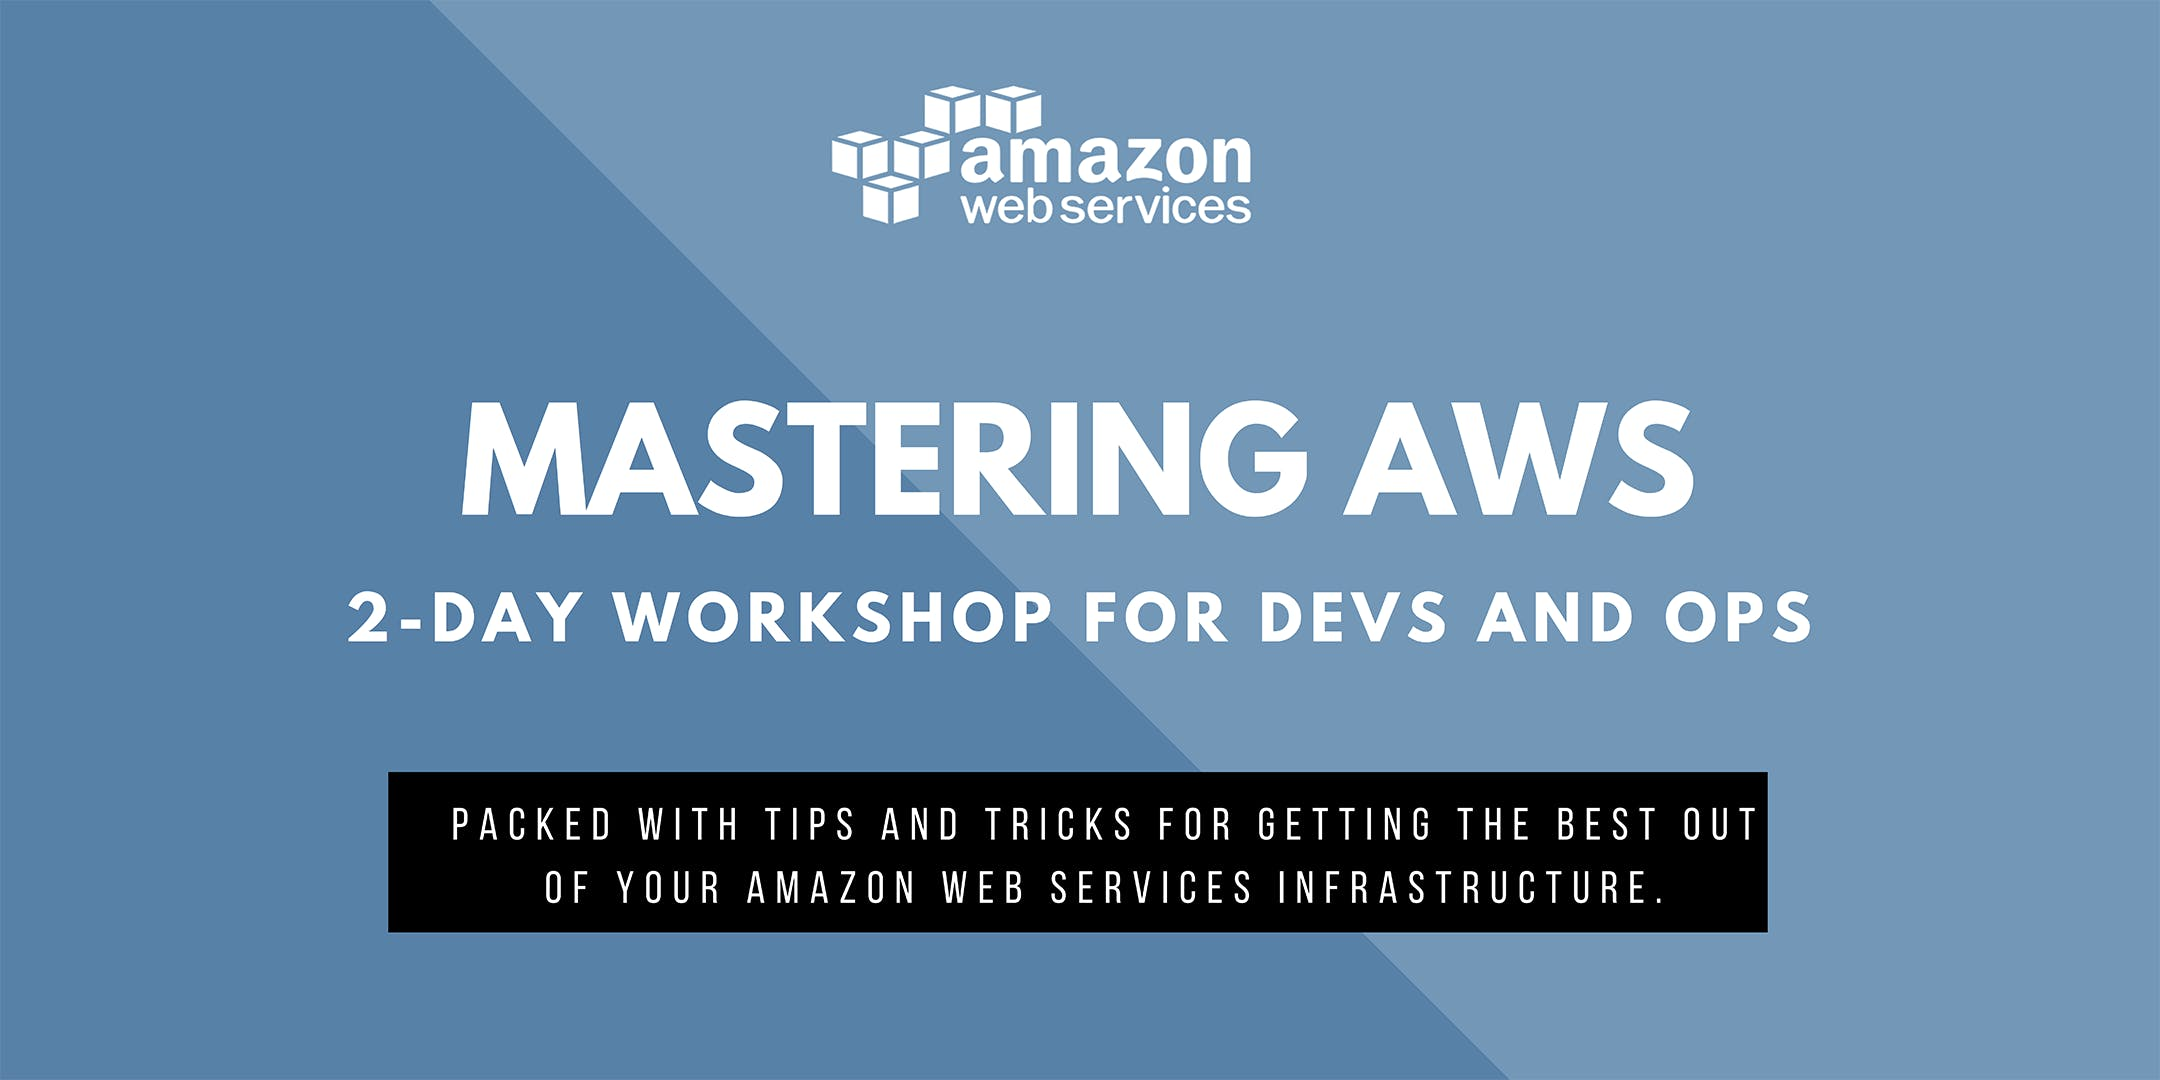 TOP Mastering Amazon Web Services (Brussels)